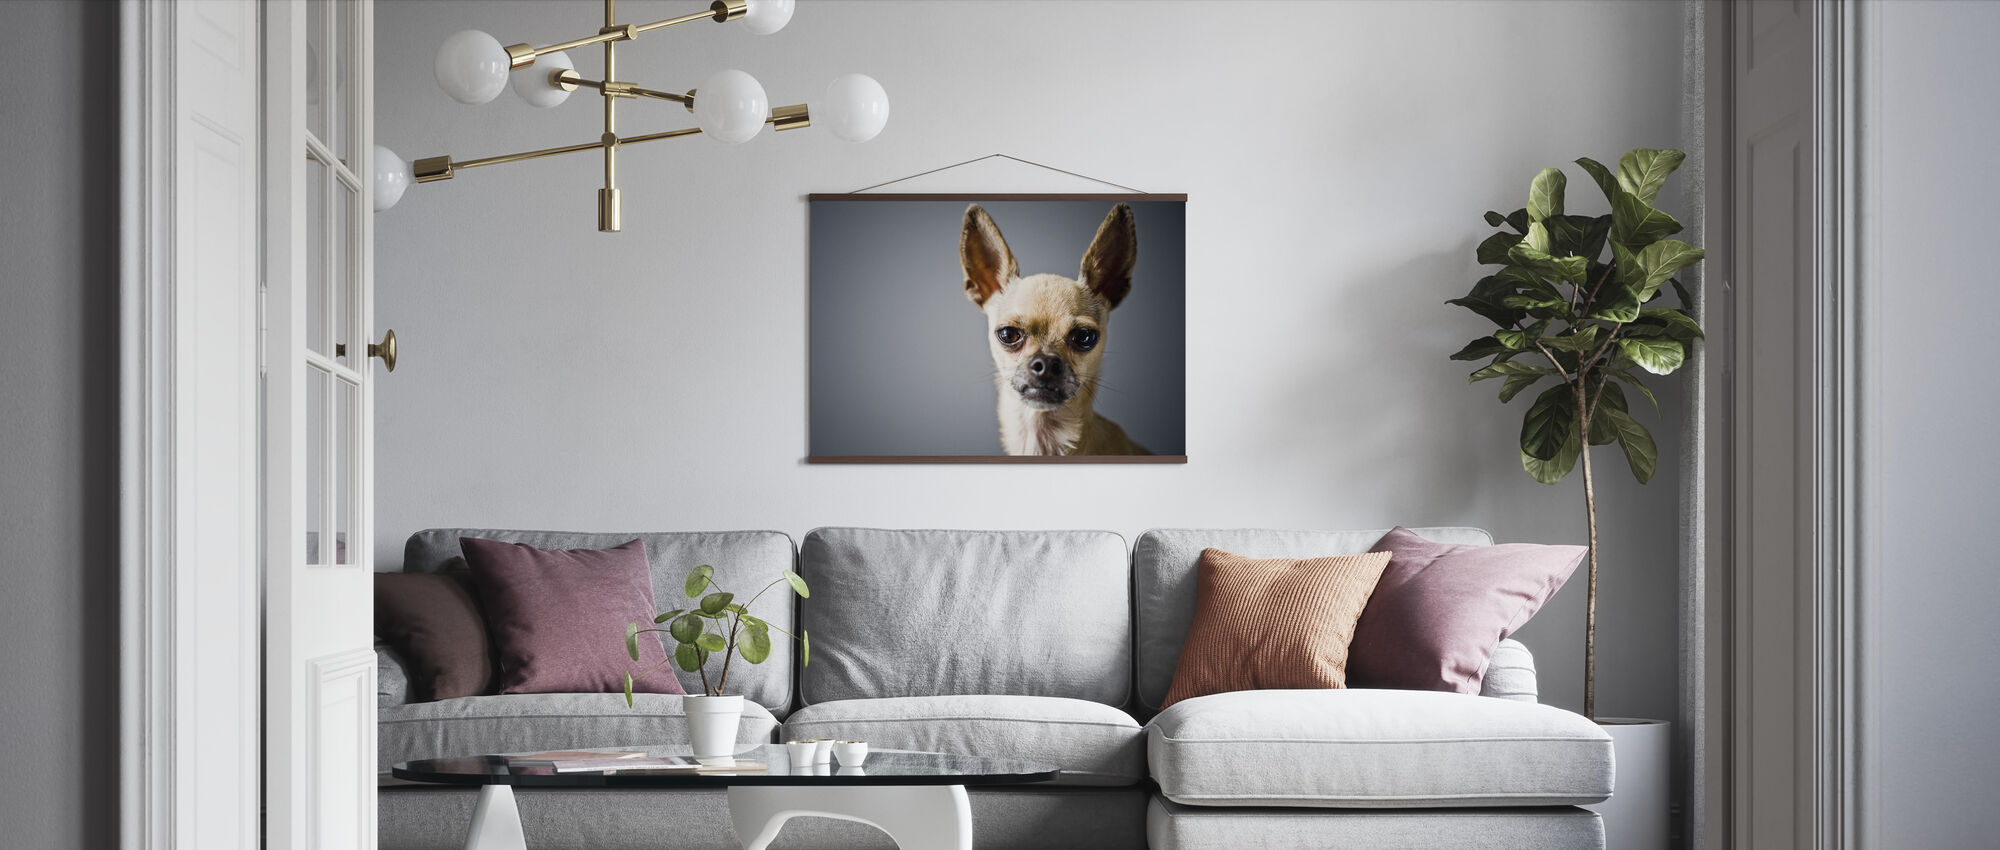 Chihuahua Imitating Lama - Poster - Living Room